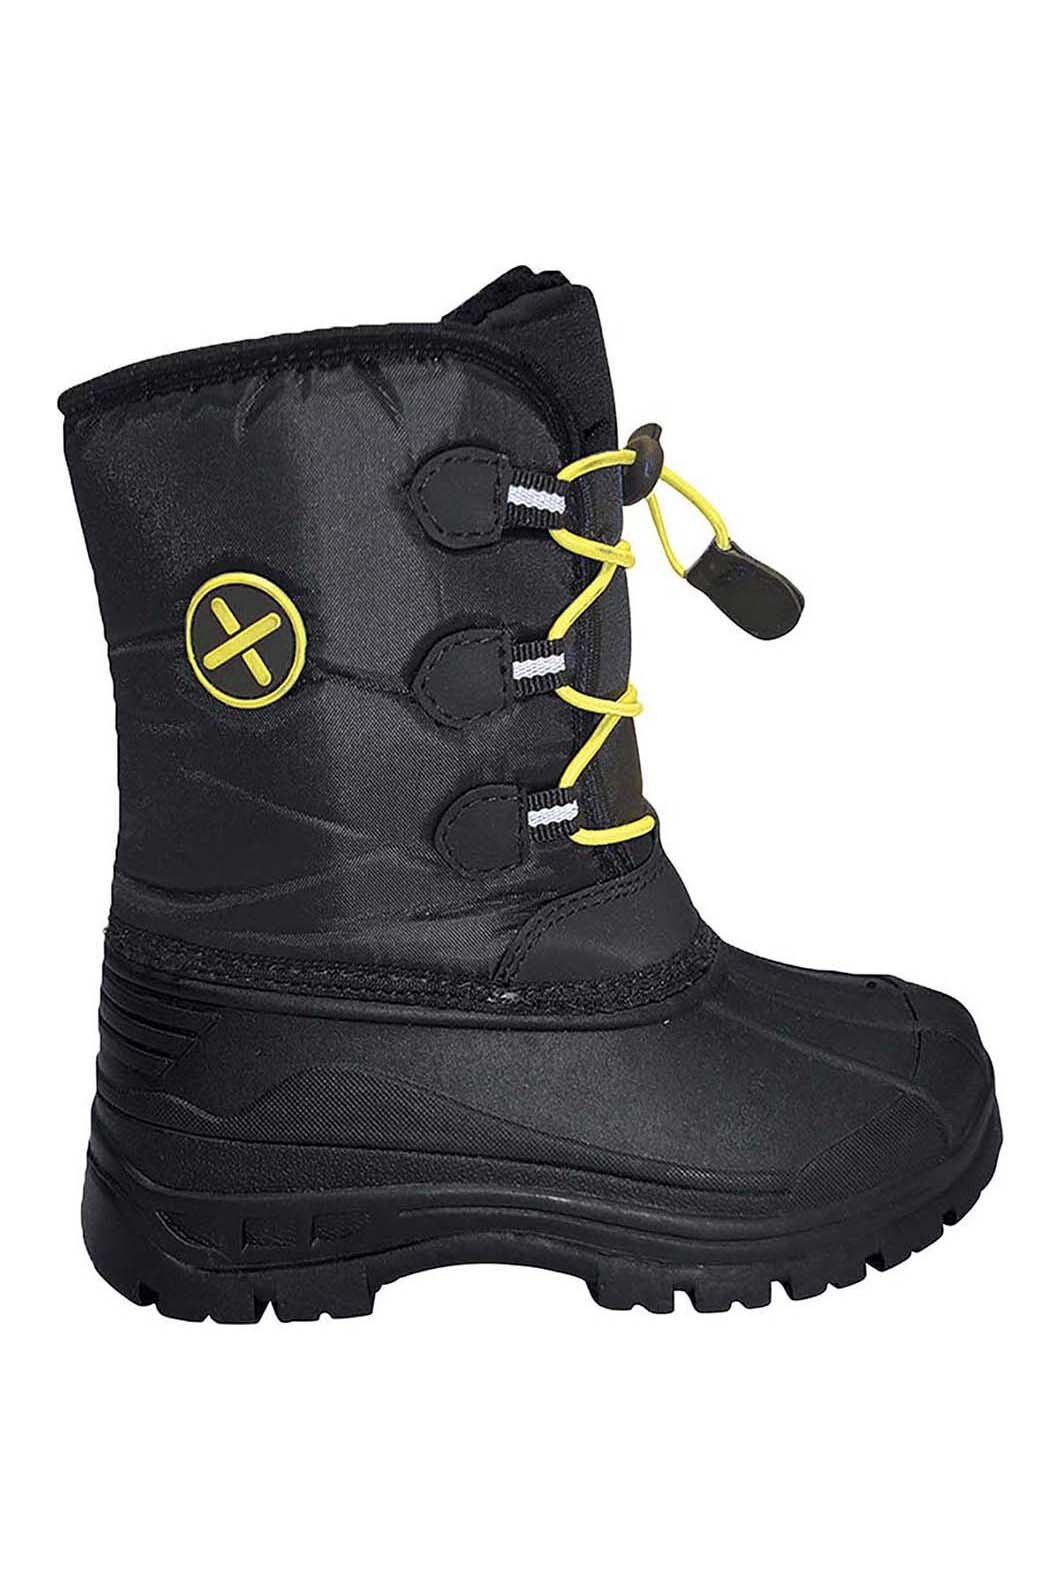 XTM Kids' Rocket Snow Boots, Black, hi-res